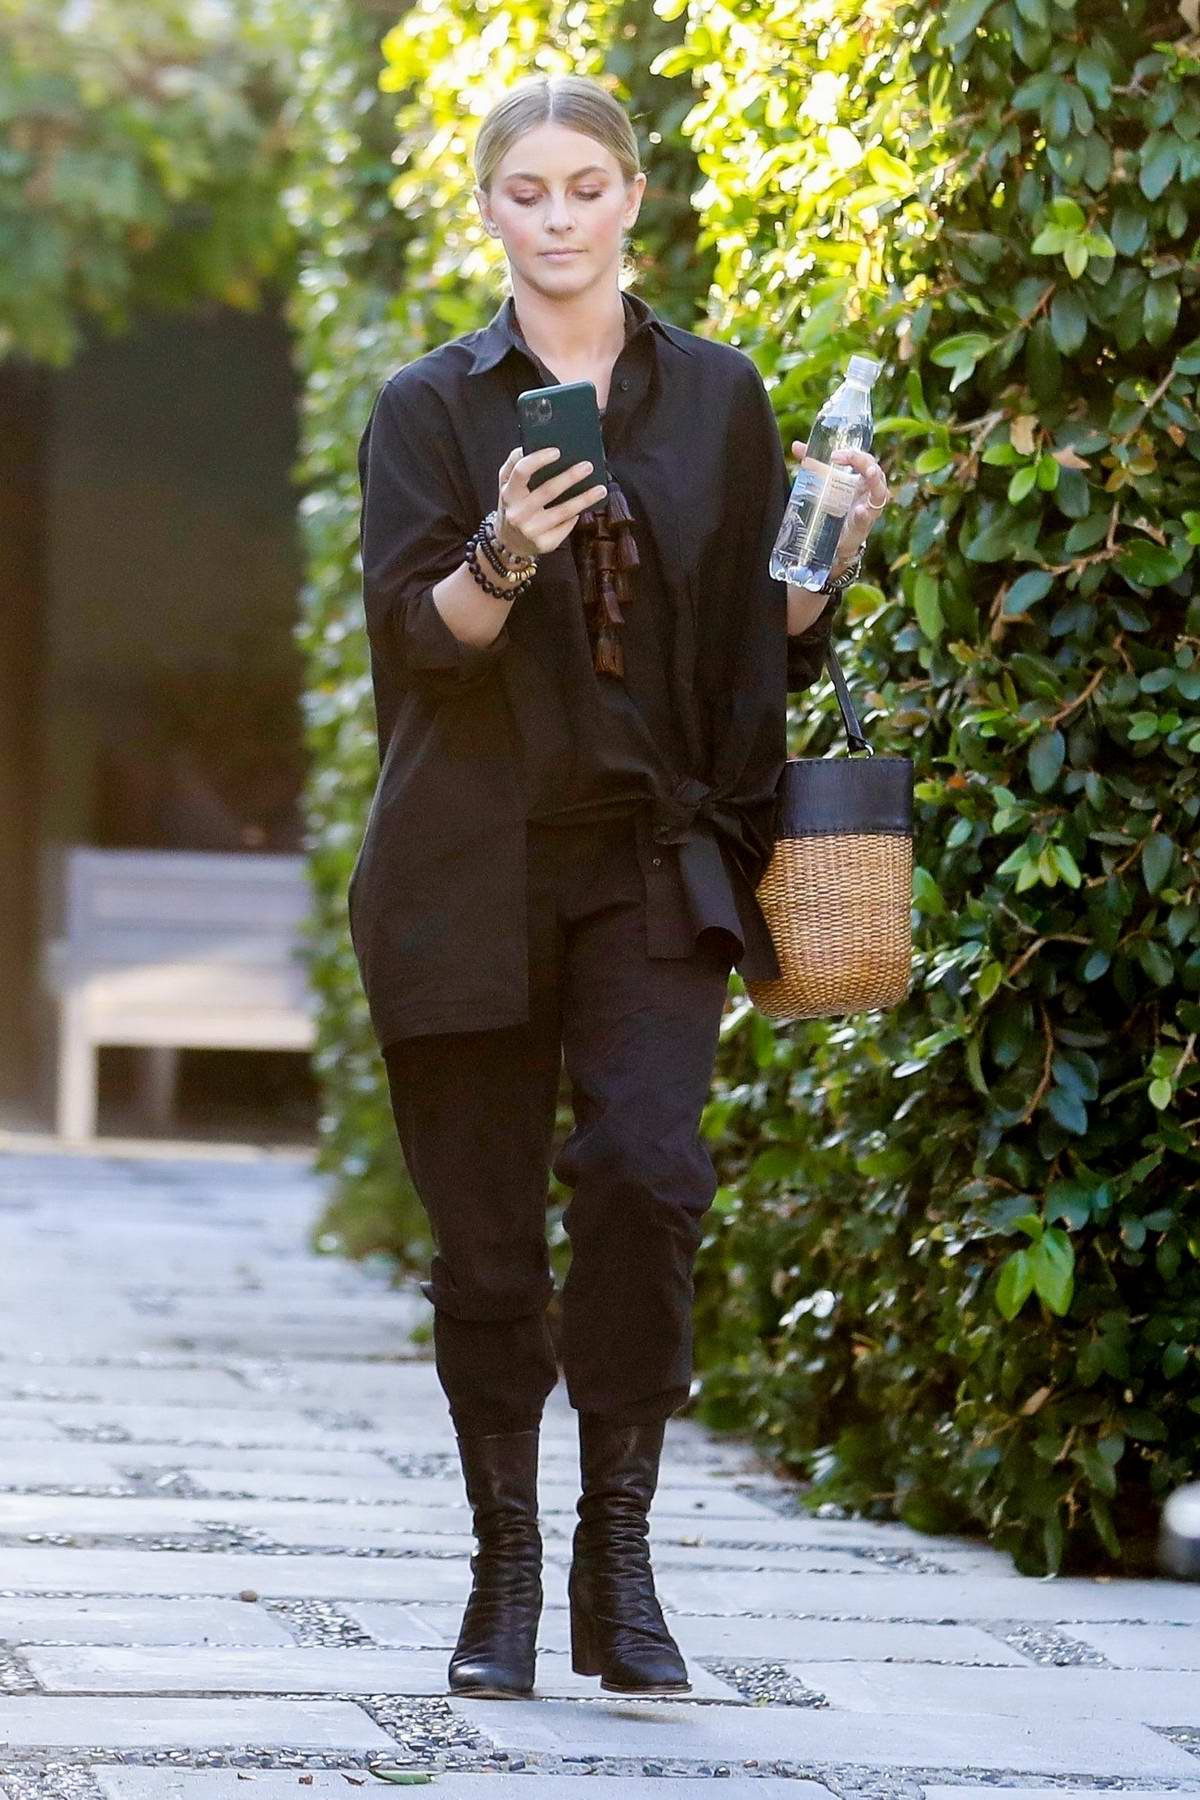 Julianne Hough checks her messages as she leaves her office in West Hollywood, Los Angeles